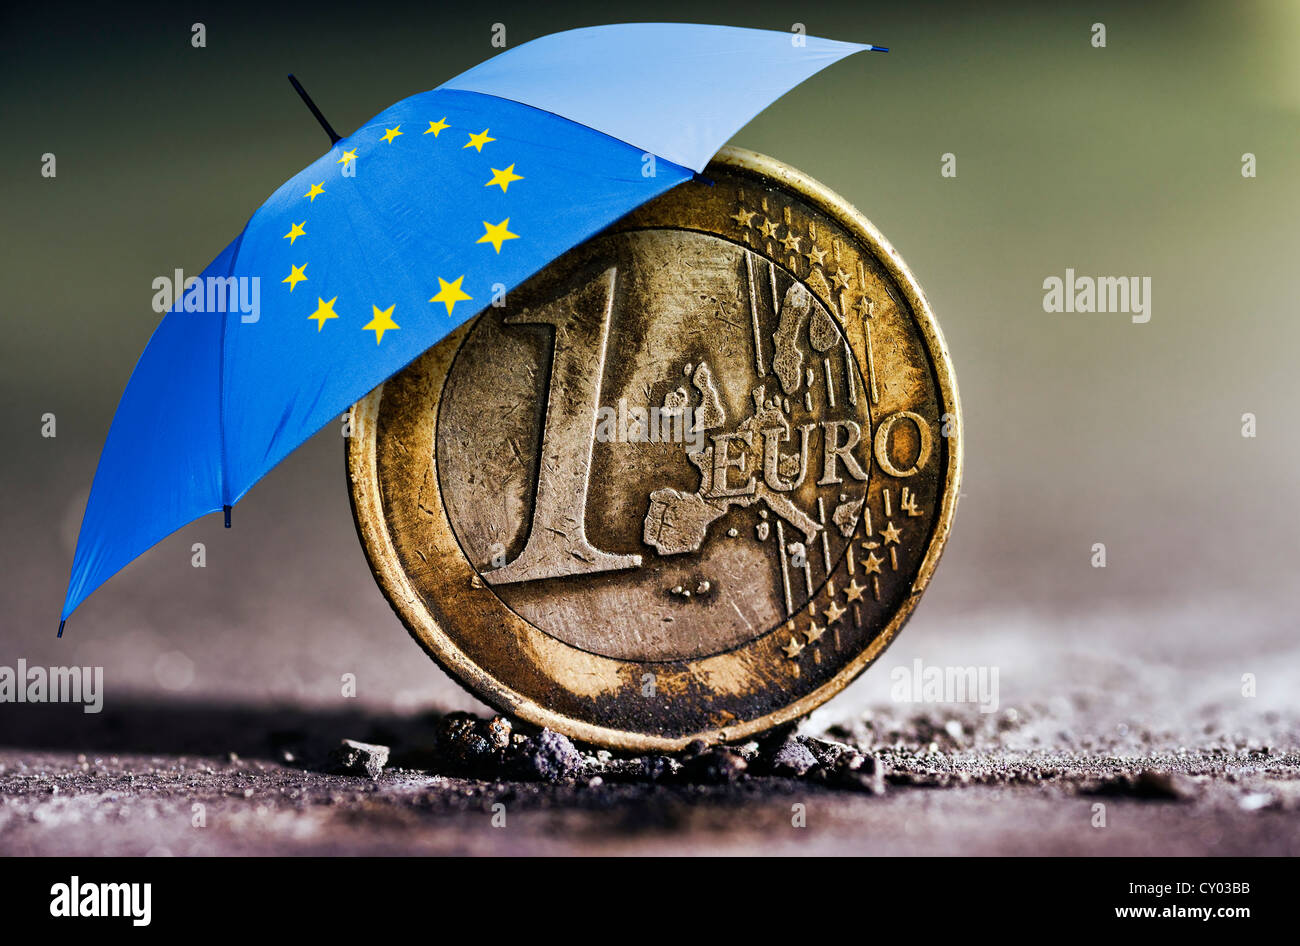 Burnt 1 Euro Coin In Ashes Under An Umbrella With The Stars Of The